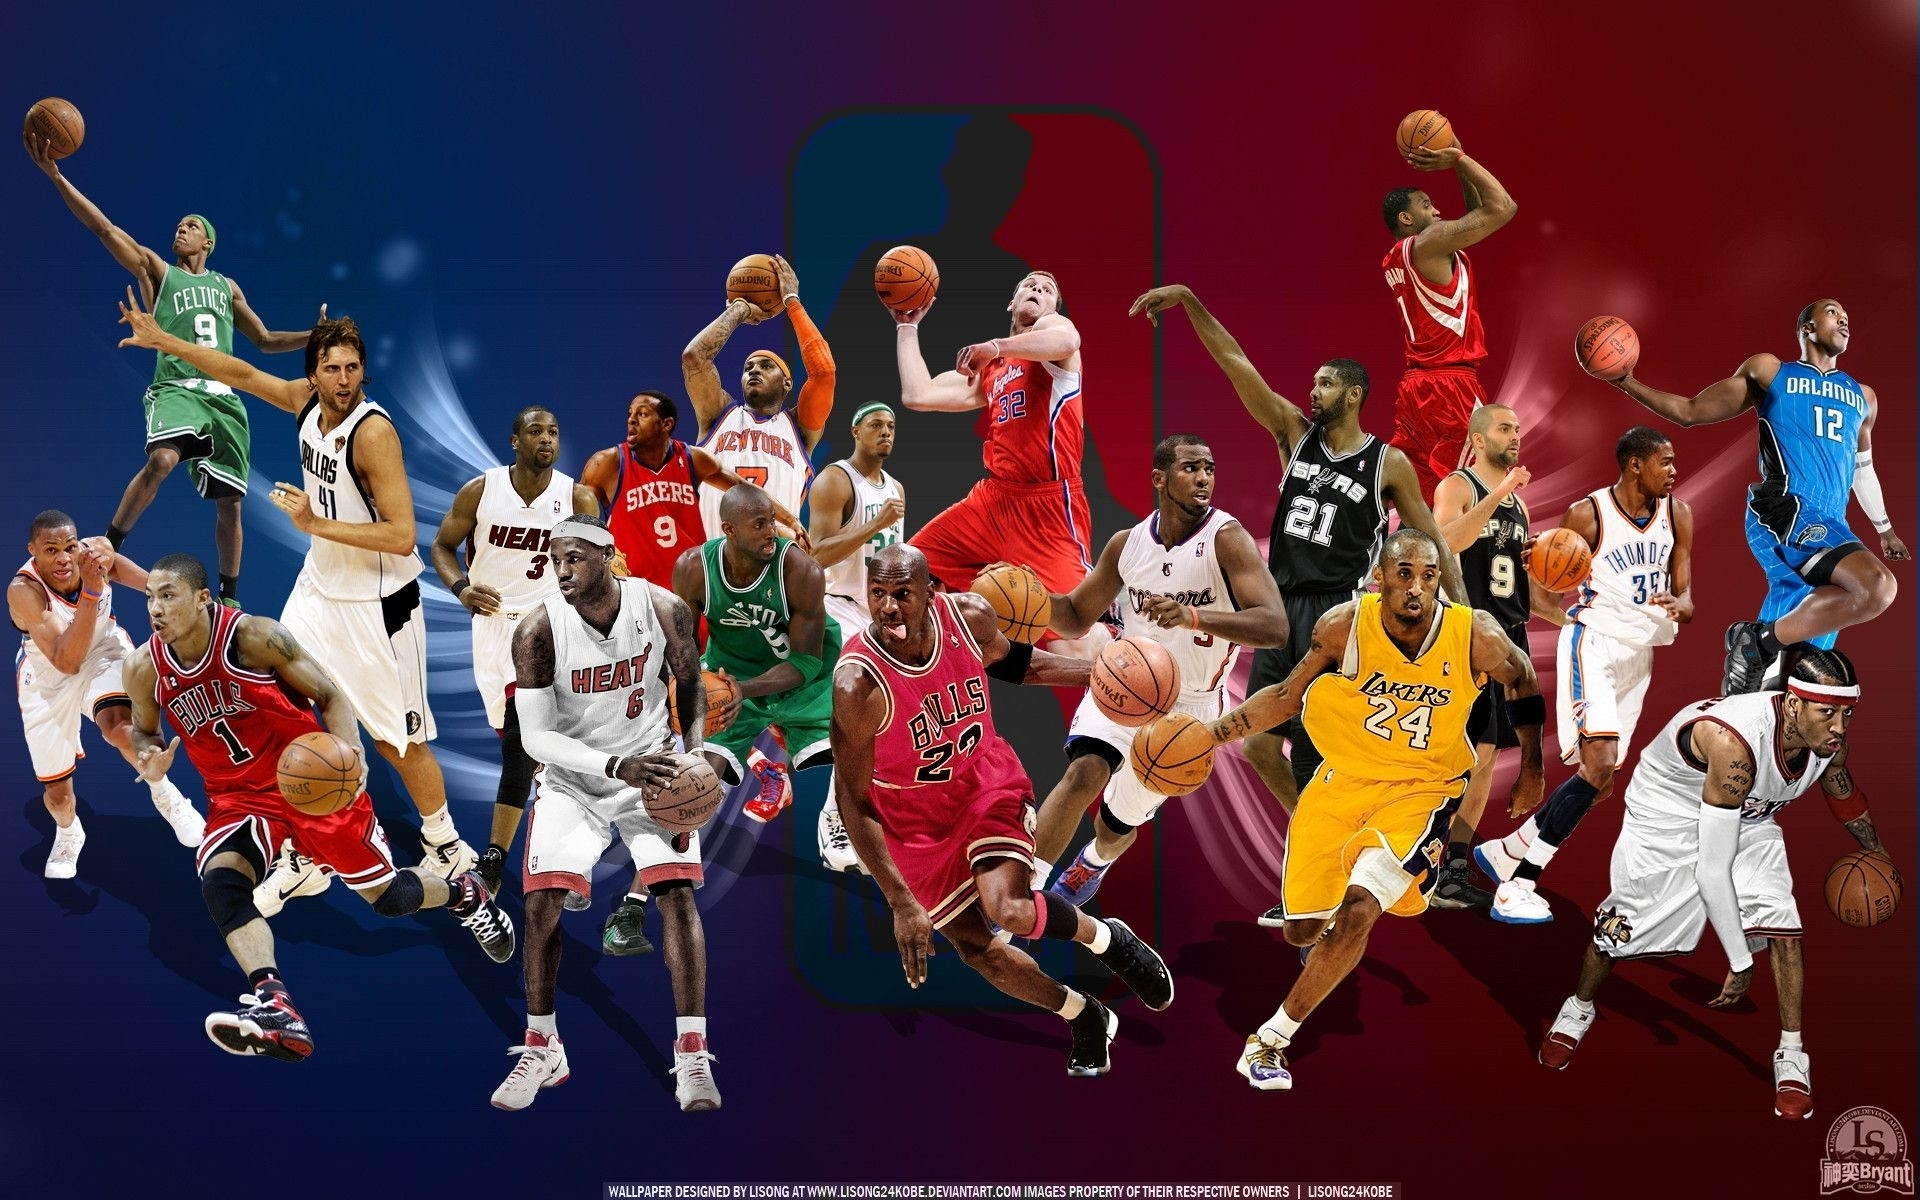 nba wallpapers 2018 hd (69+ images)